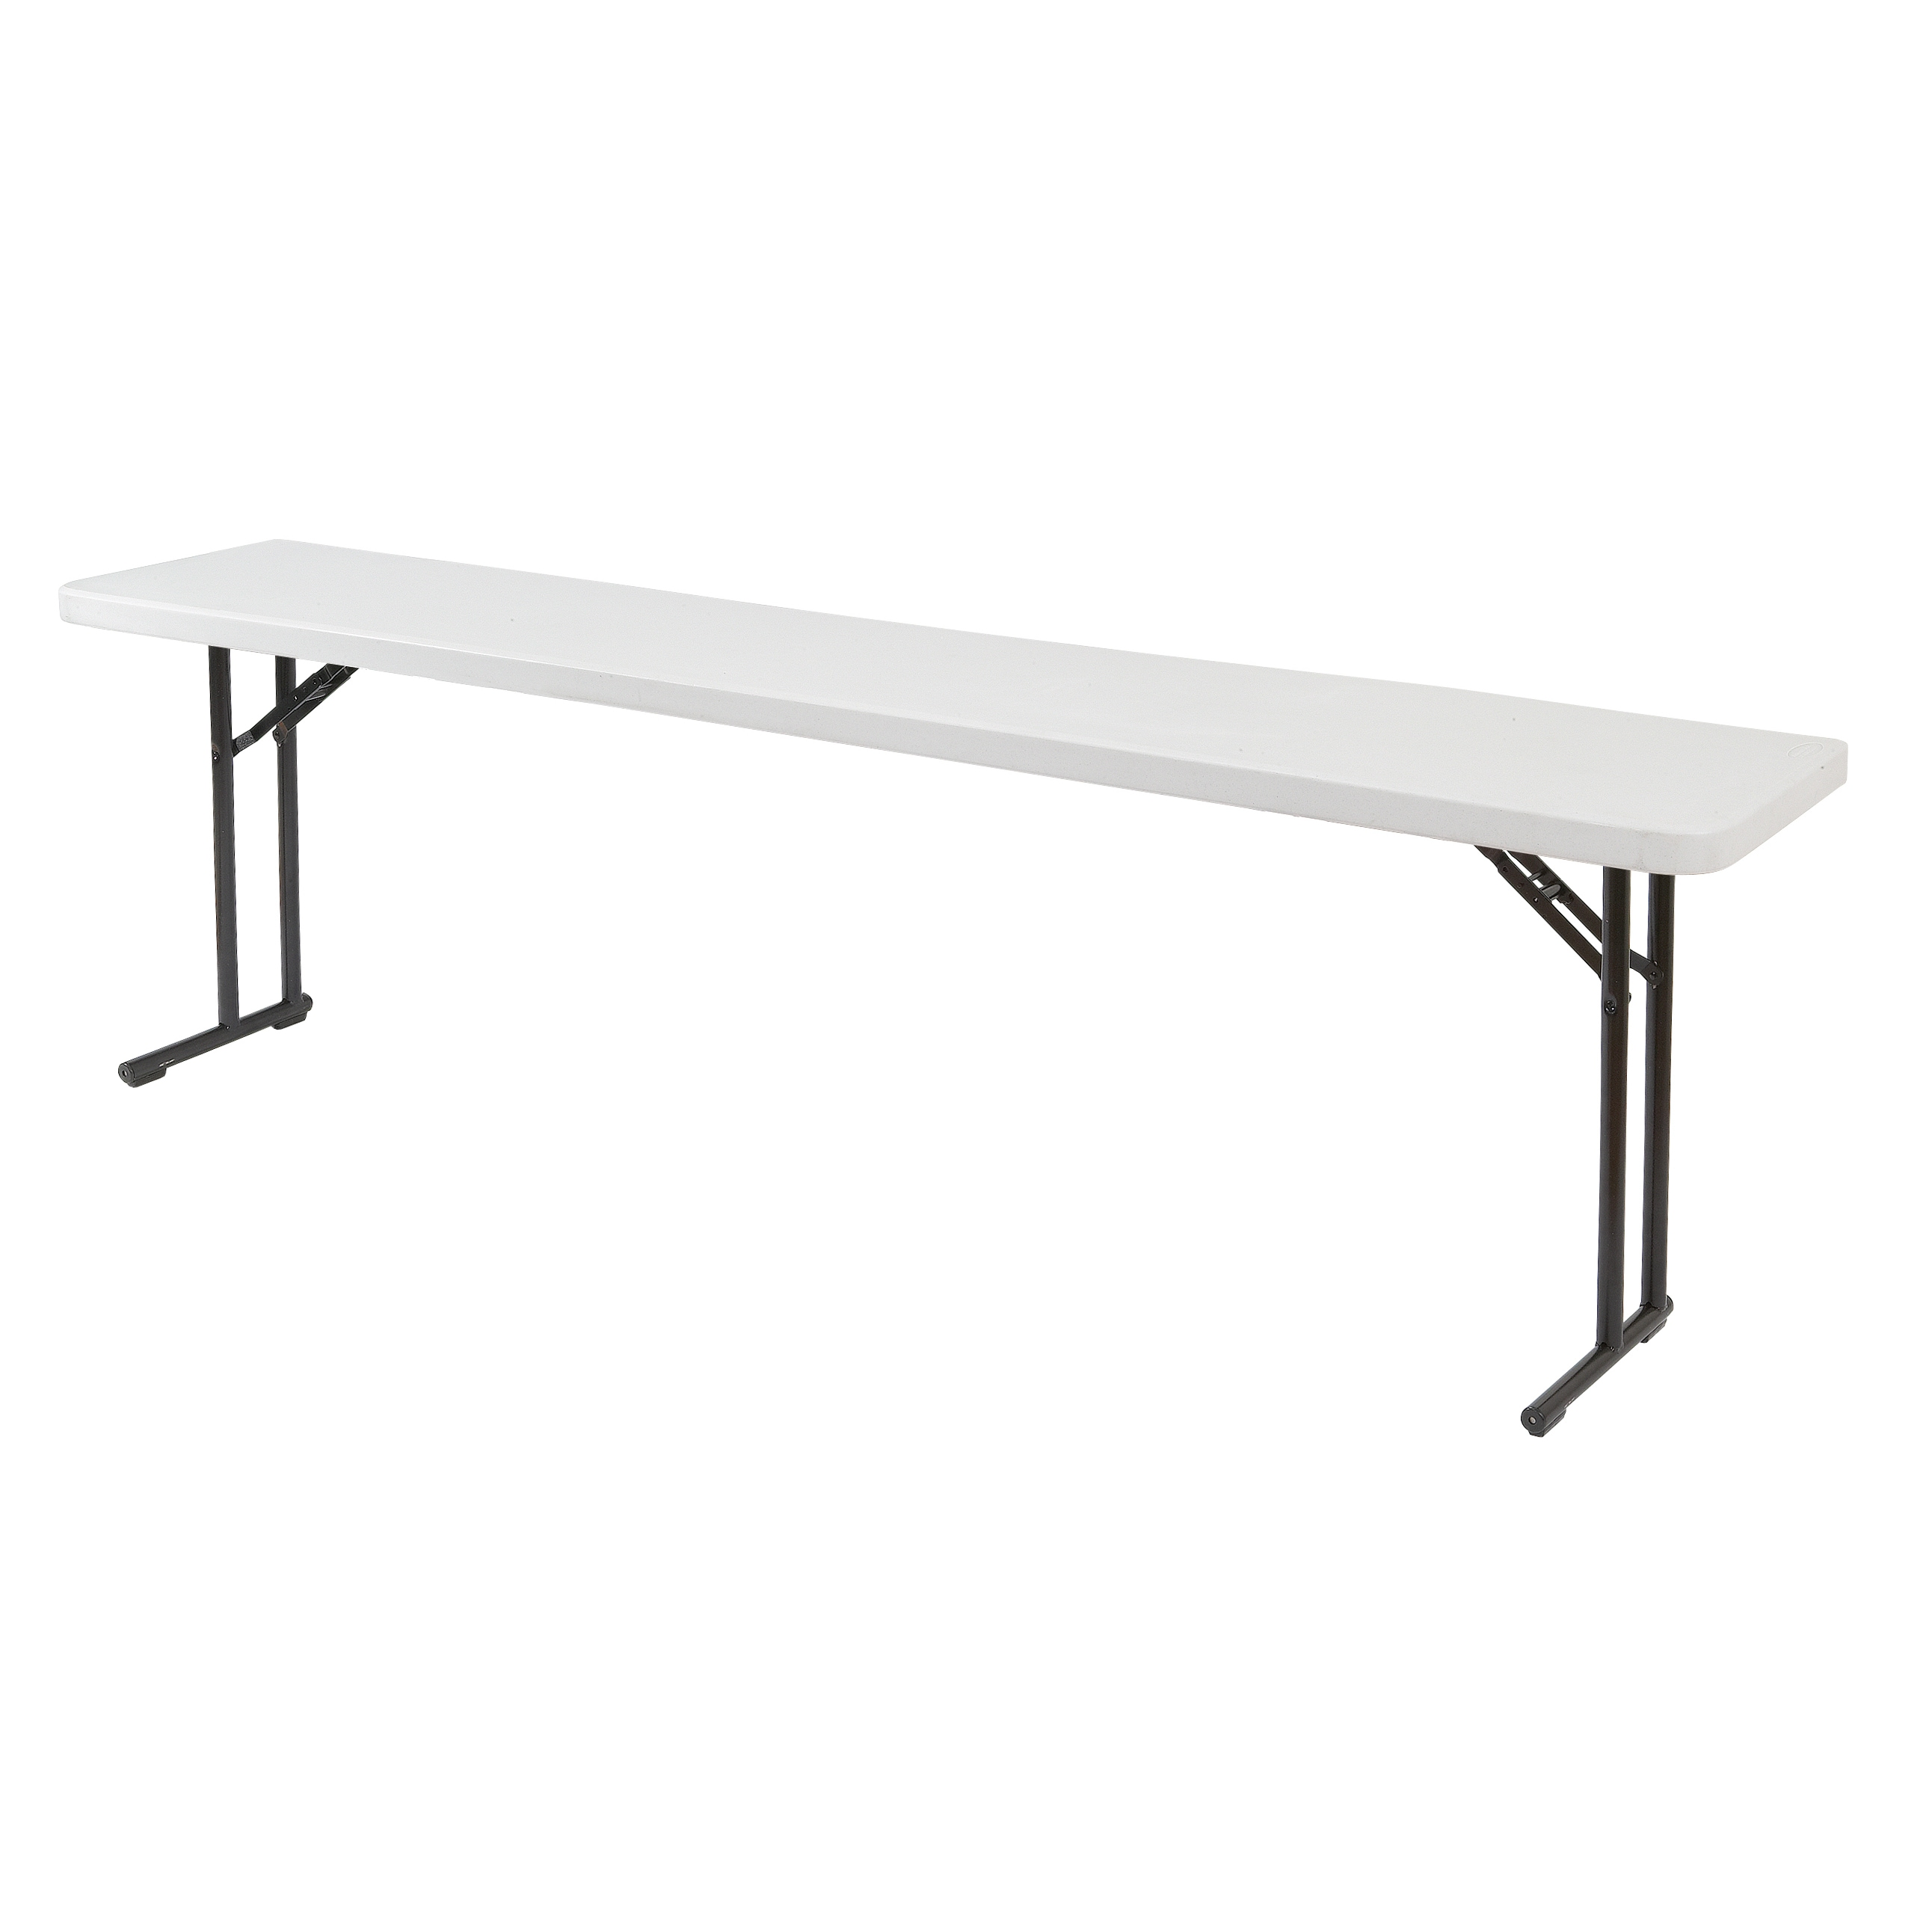 Plastic Molded Seminar Folding Table 18 X96 20 Pack On Free Shipping Today 11137947